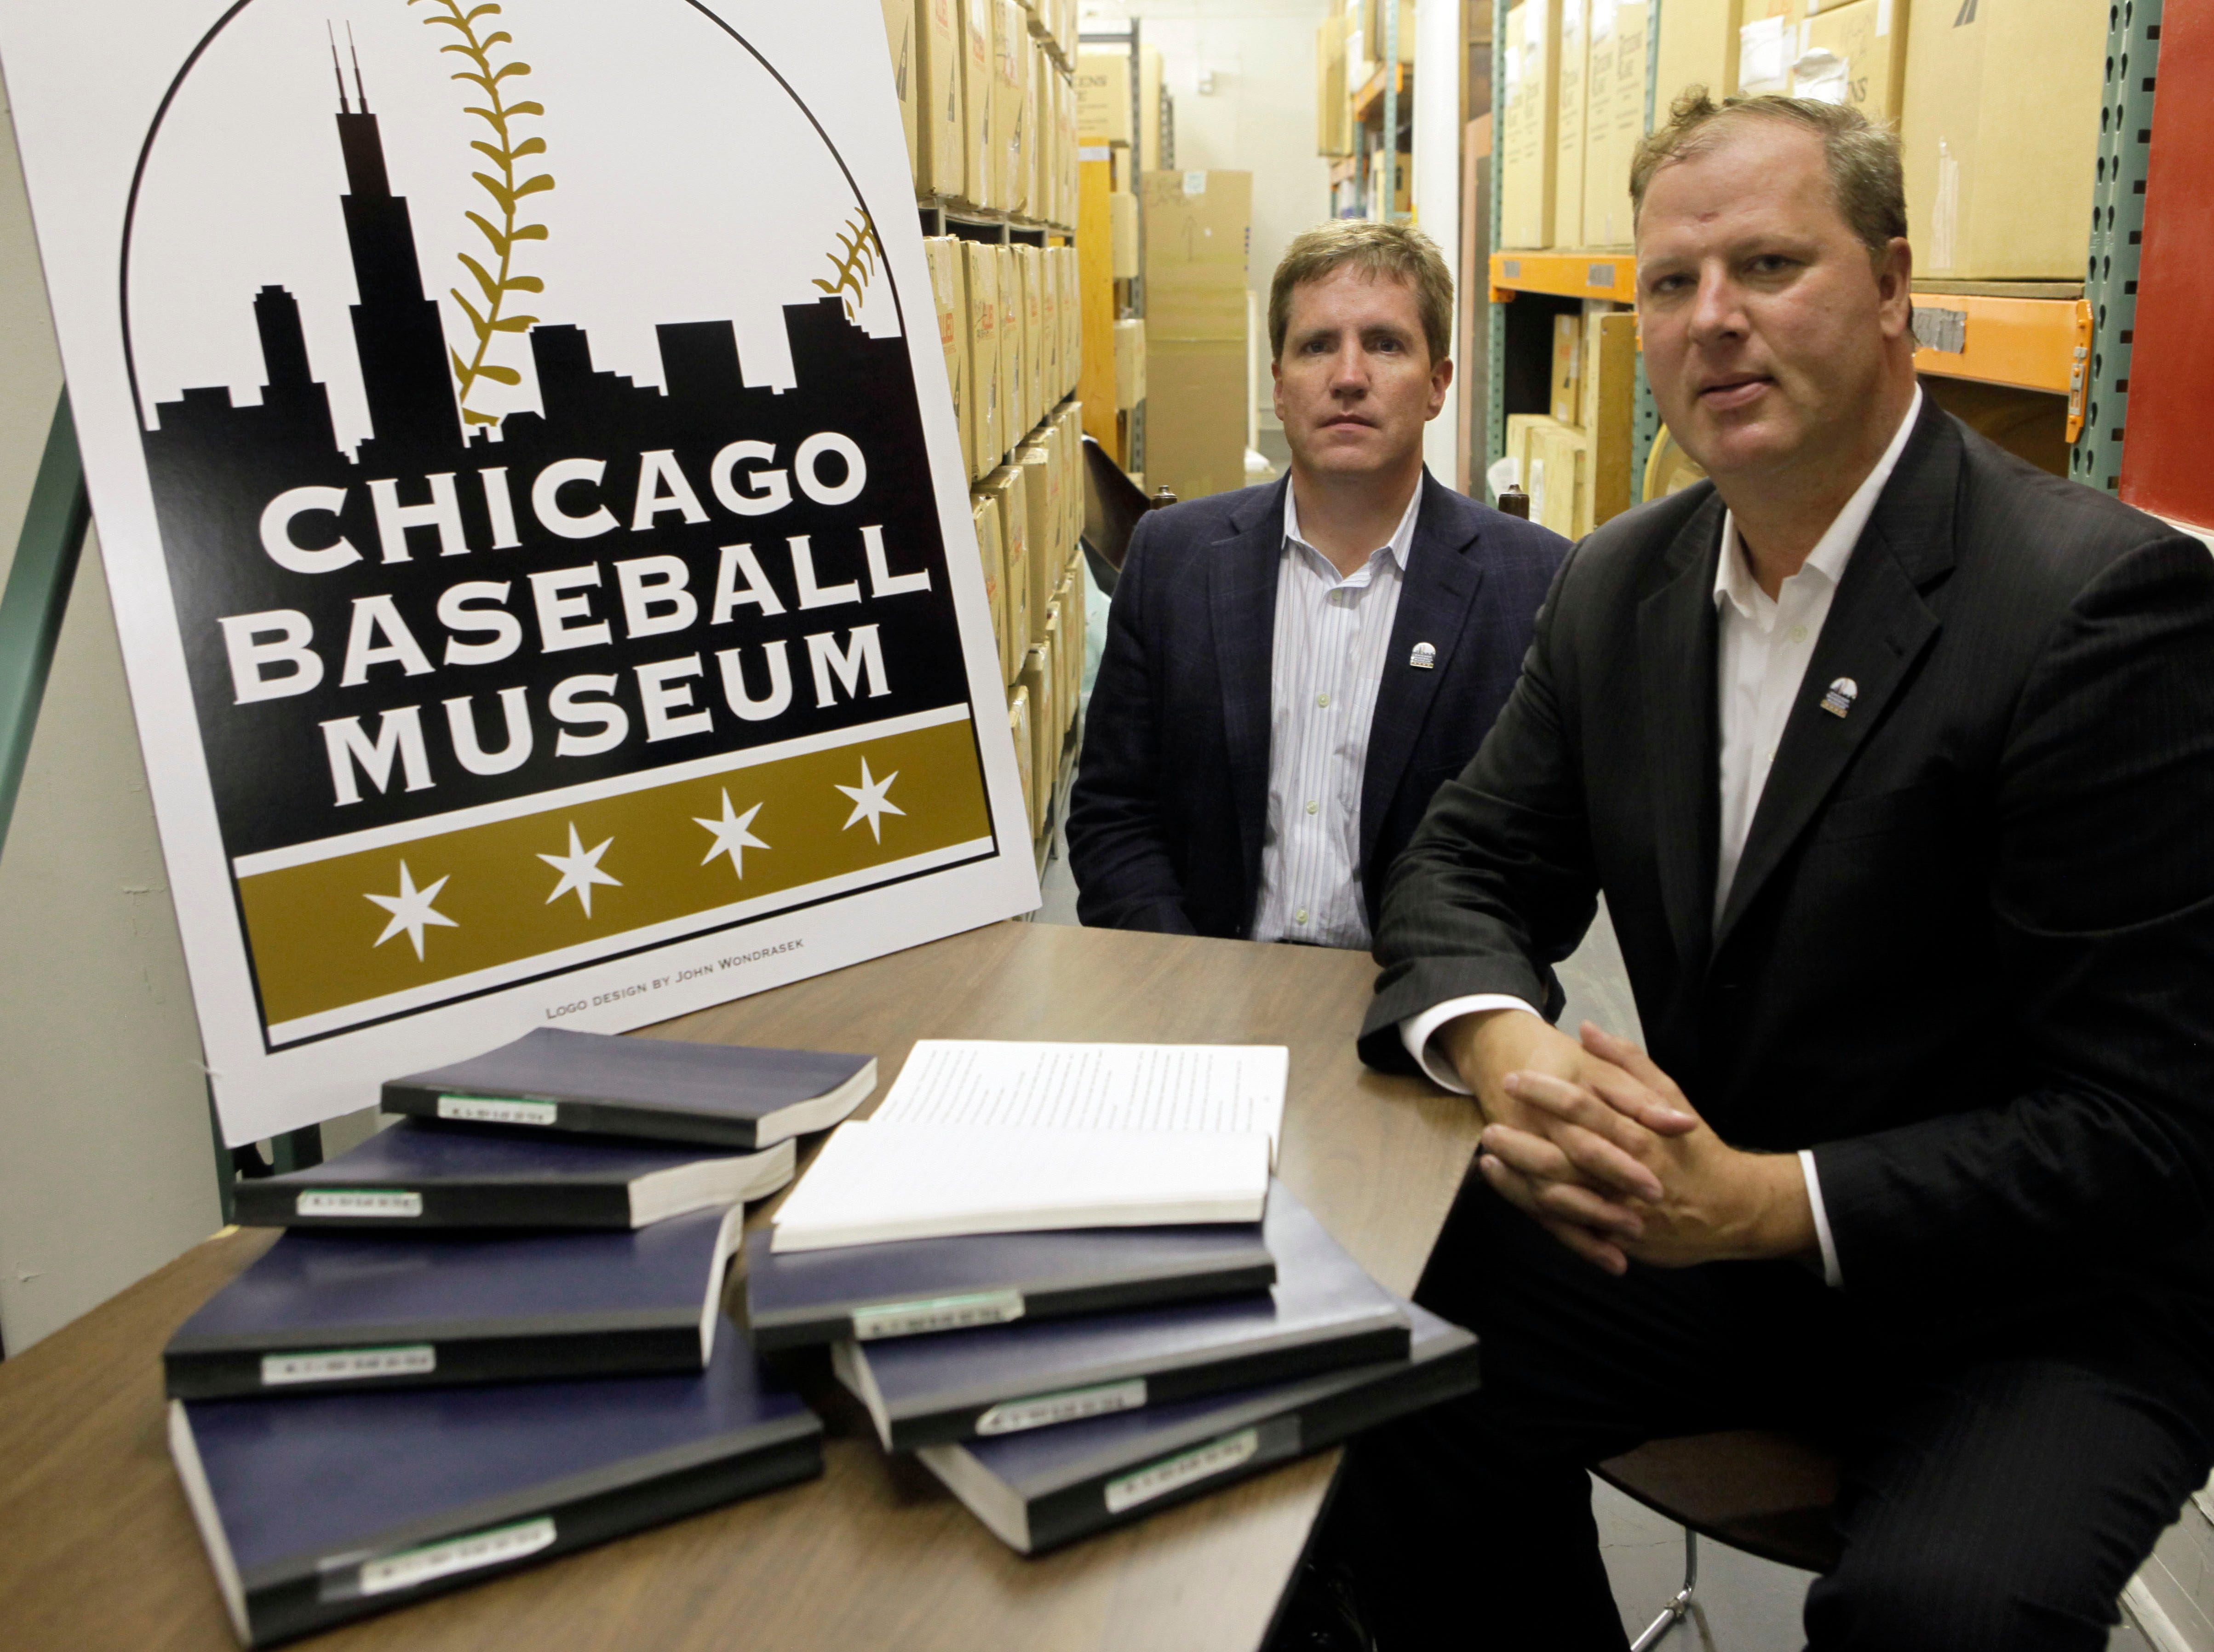 "** ADVANCE FOR WEEKEND EDITIONS, SEPT. 12-13 **  In this photo taken Thursday, Sept. 10, 2009, attorneys Paul Duffy, left, and Dan Voelker sit next to the transcript of the Black Sox trial in Chicago. The kid pleading with Shoeless Joe Jackson to ""Say it ain't so"" is one of the most enduring stories in baseball history. Now two Chicago attorneys have concluded it ain't so after all. They combed through documents and an author's notes to conclude Jackson was not a cheater who helped the White Sox throw the 1919 World Series. And they also found no evidence the kid ever existed. (AP Photo/Kiichiro Sato)"